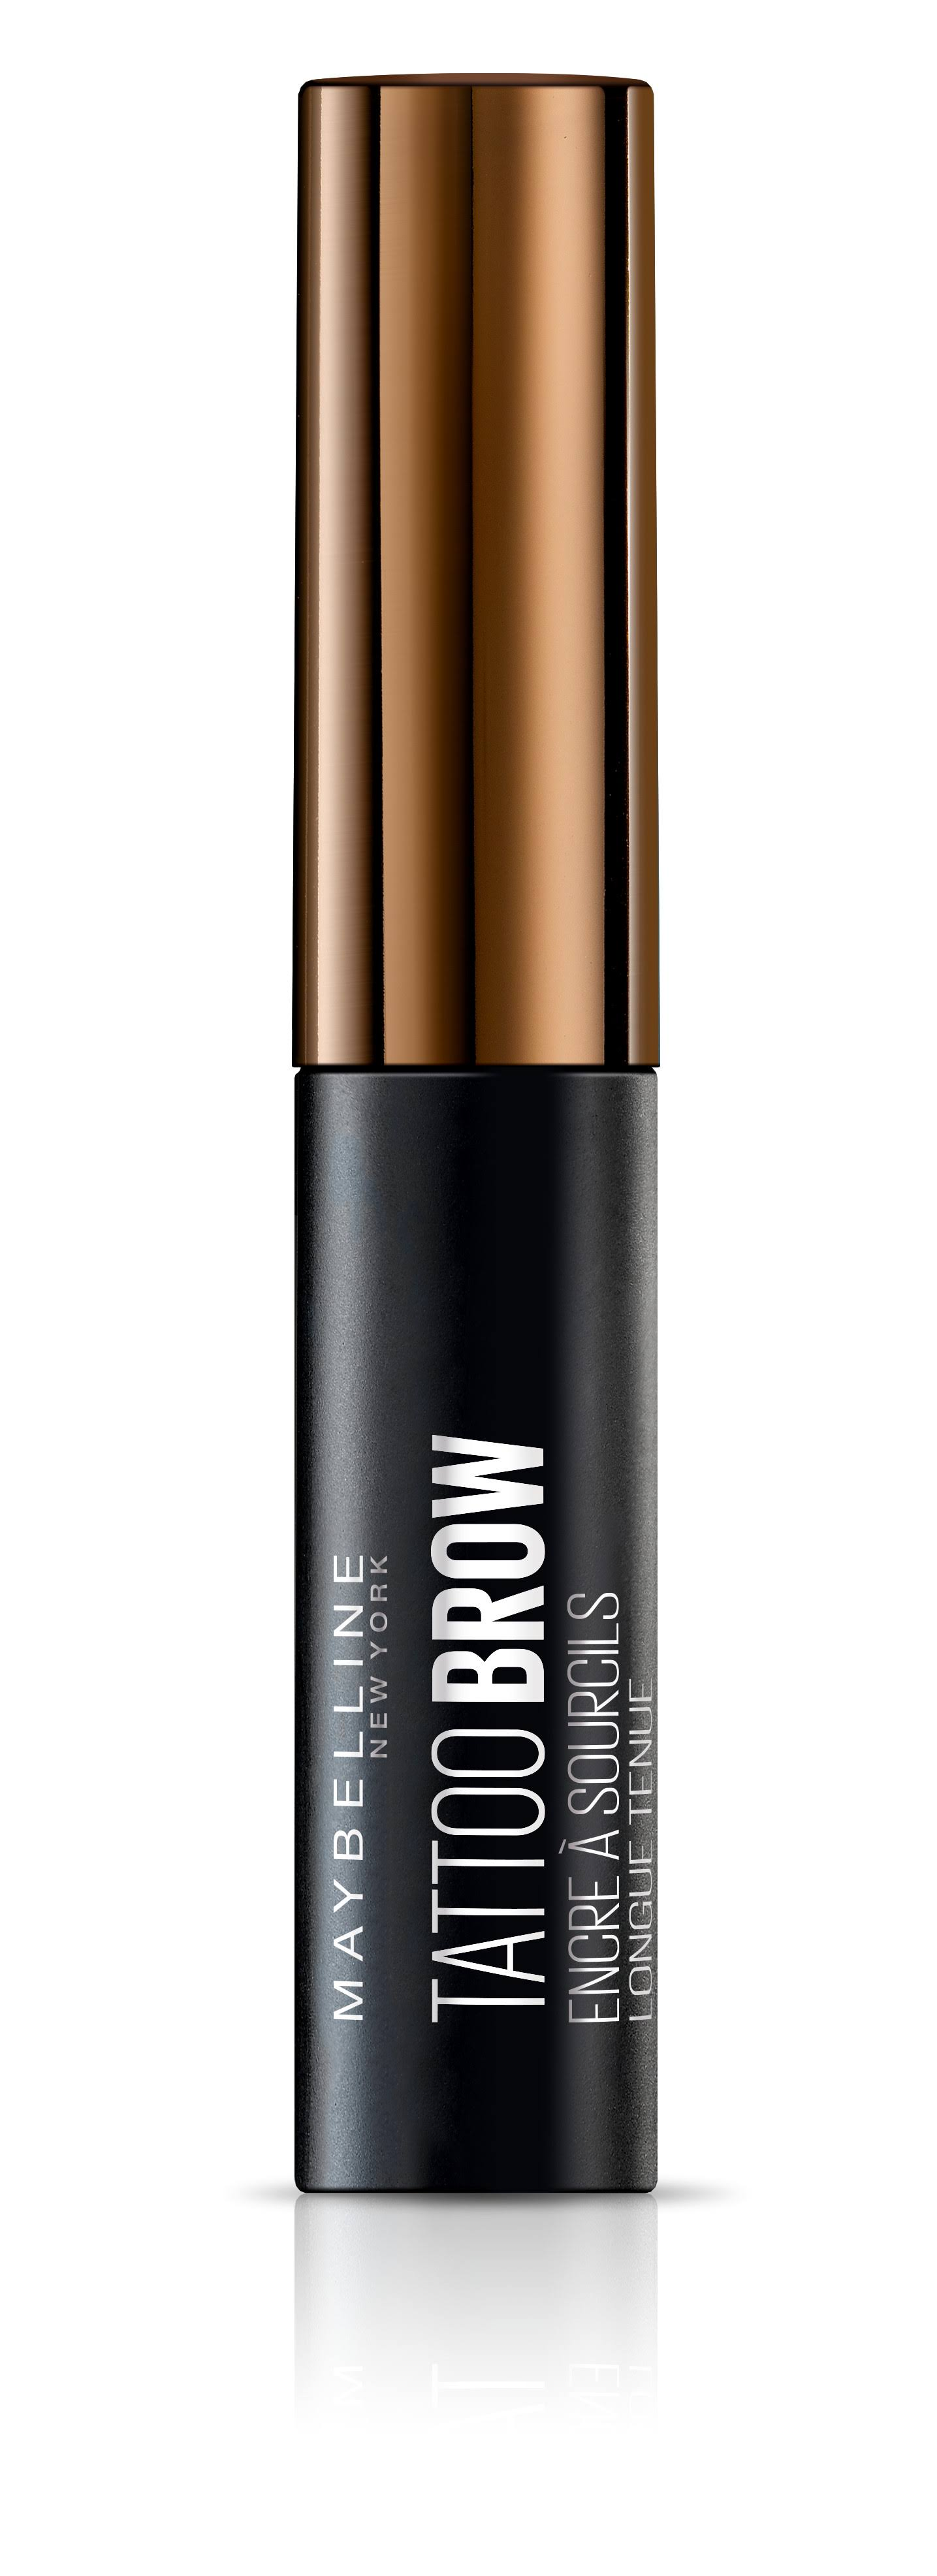 Maybelline Tattoo Brow Gel Tint - Medium Brown, 4.9ml